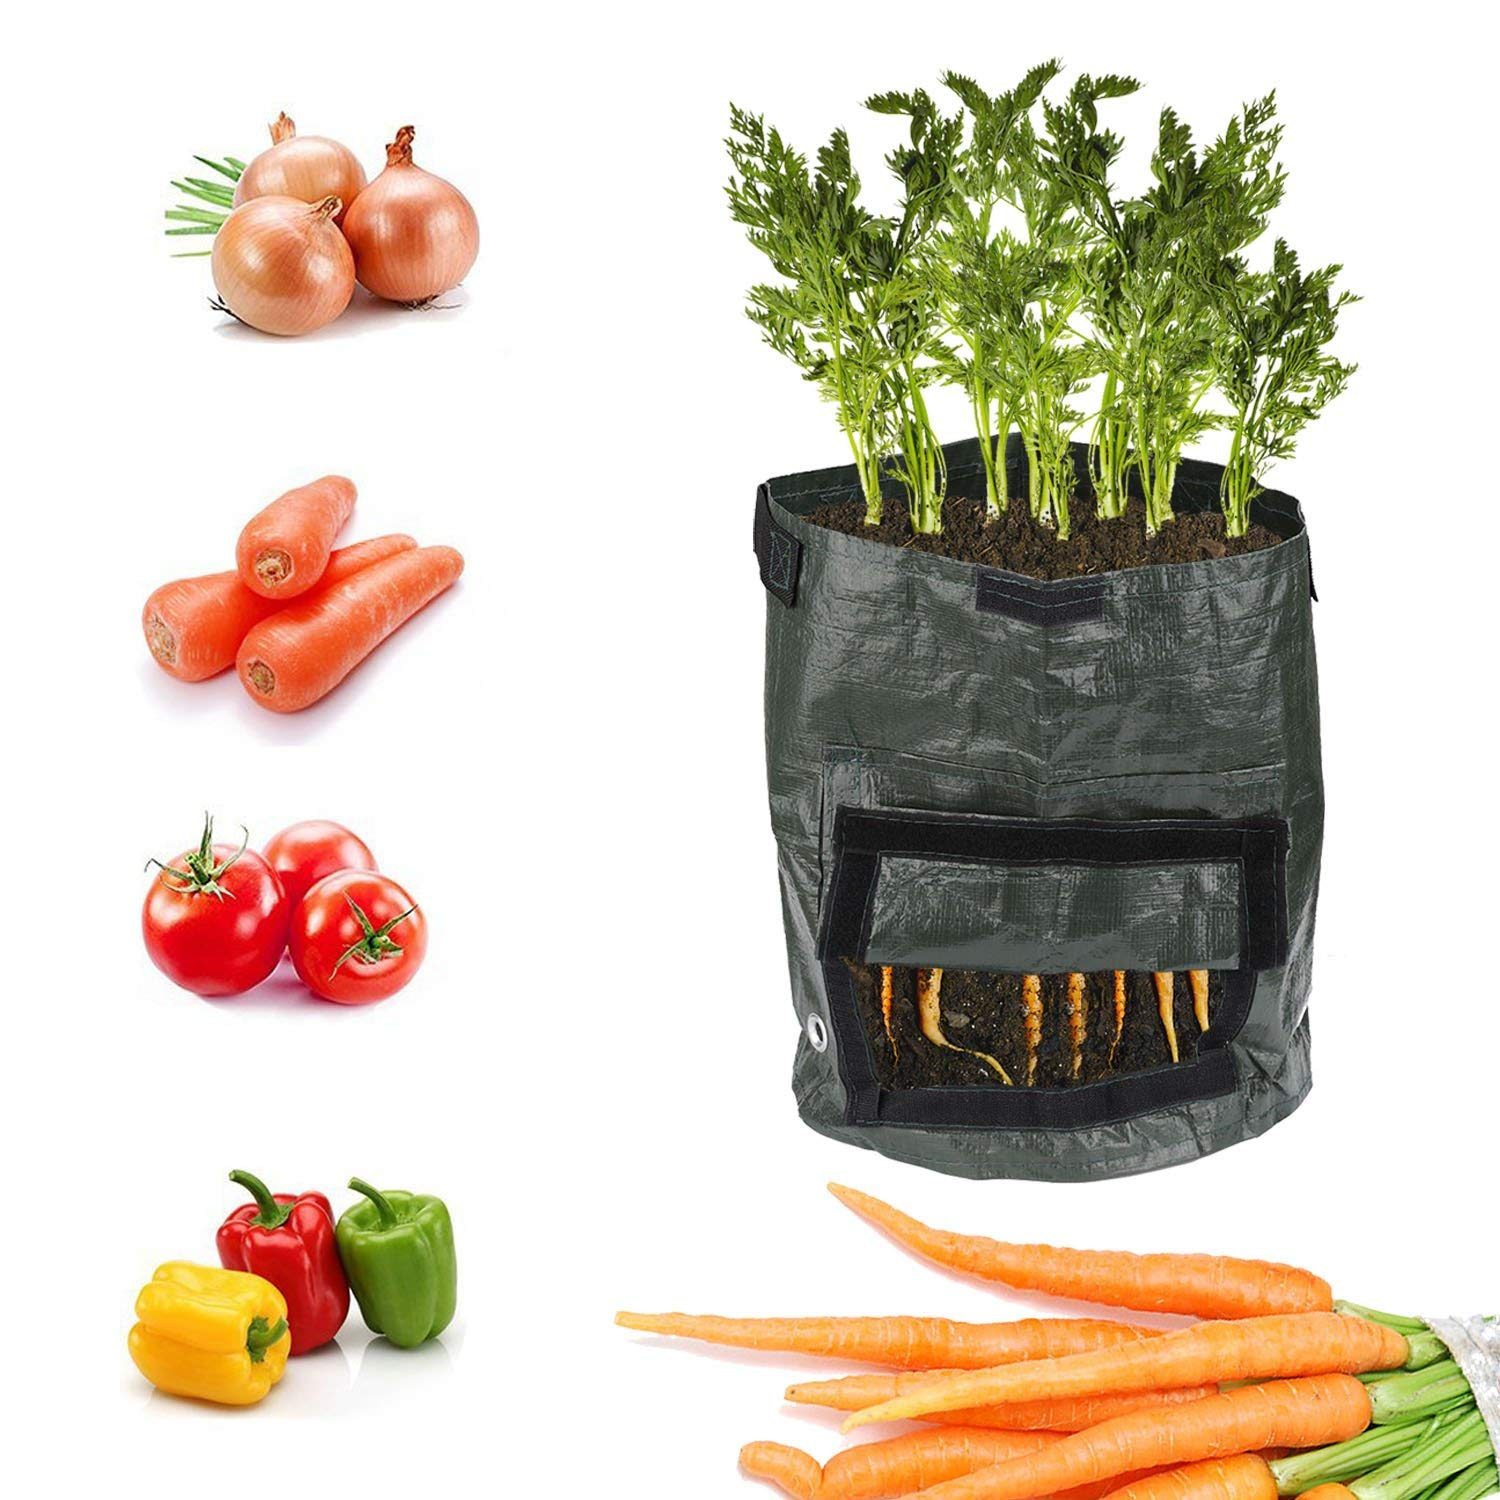 ARTSTORE 1pcs 7 Gallon Garden Planting Soil Container,Portable Durable PE Big Home Farm Planter Planting Bag for Potato,Carrot,Onion,Vegetables Flower Plant,with Flap and Handles